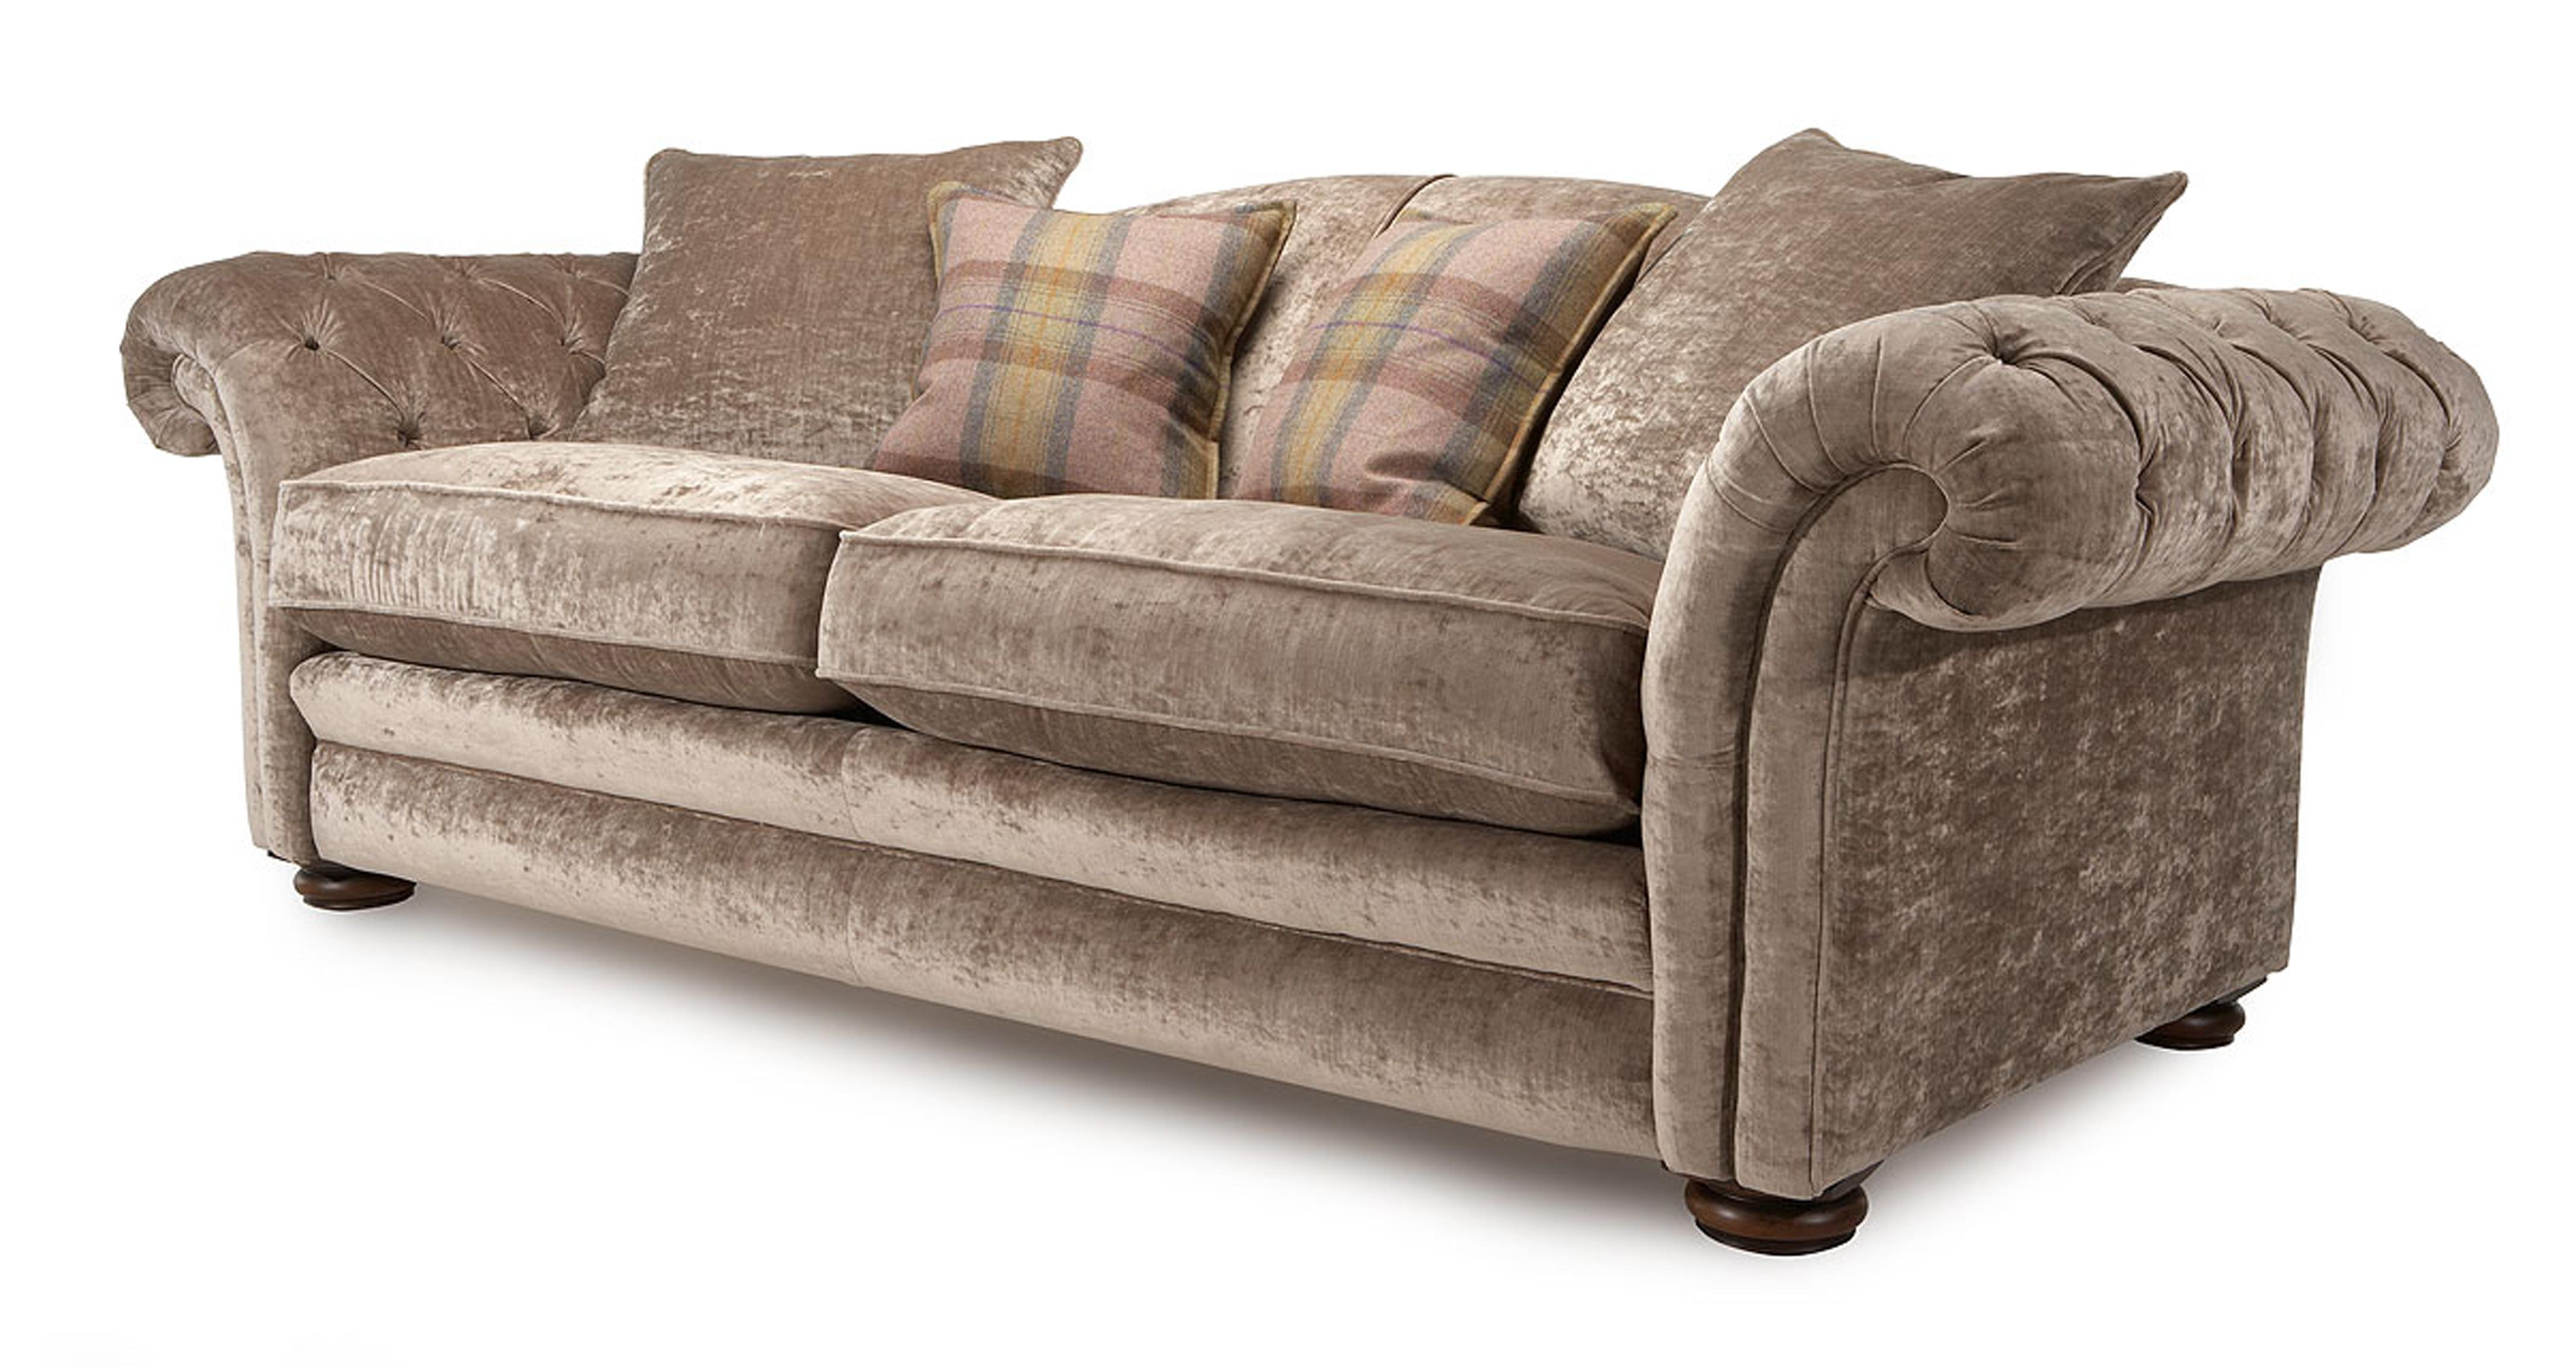 Dfs Leather Sofa Loch Leven Grand Pillow Back Sofa Loch Leven | Dfs